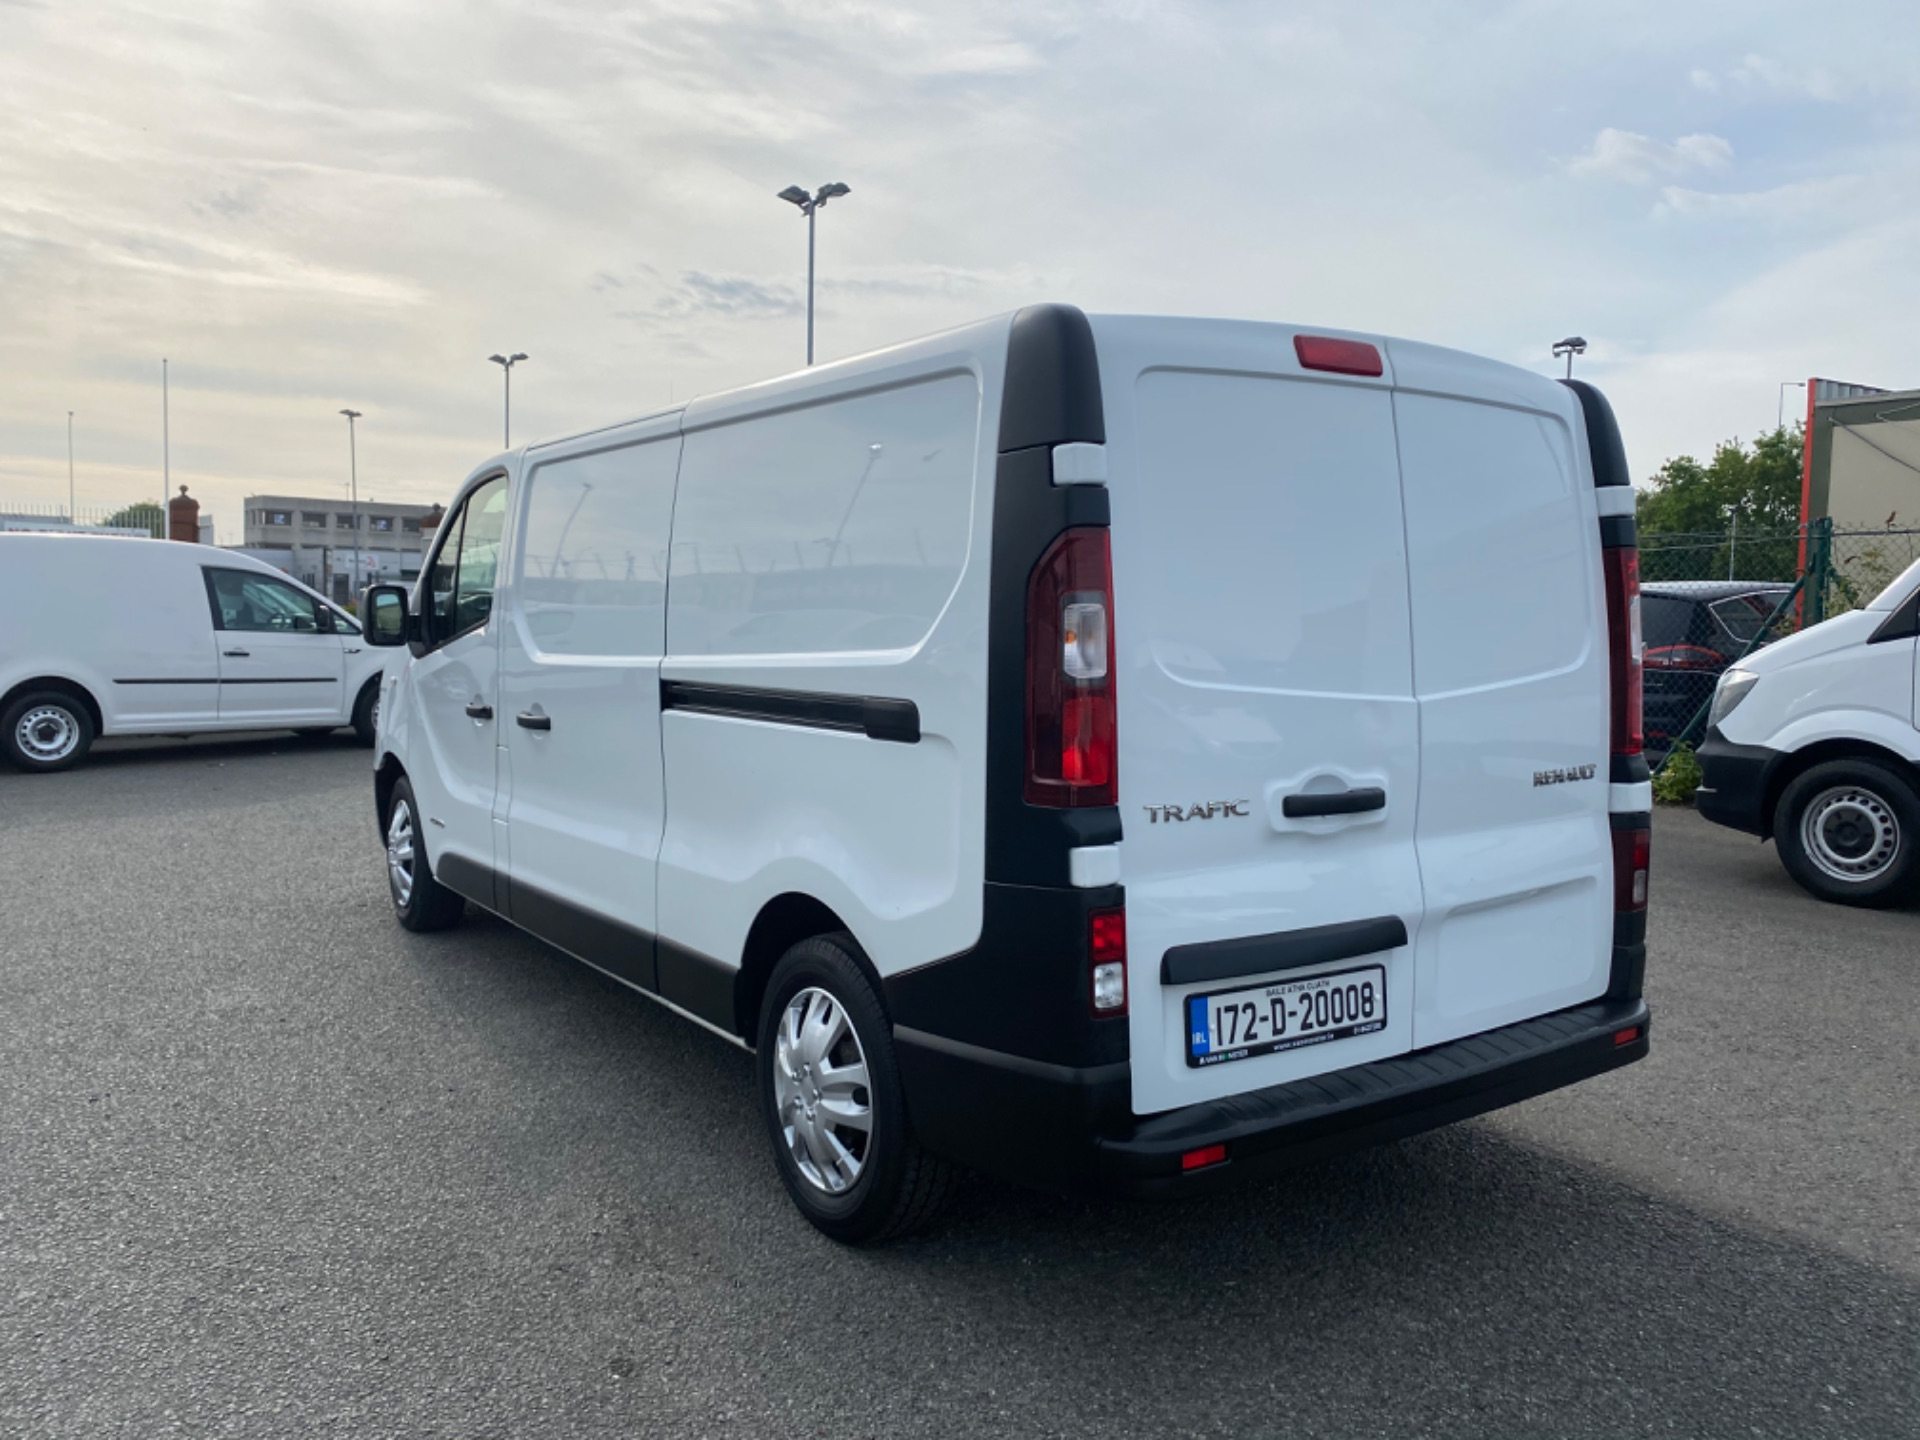 2017 Renault Trafic LL29 DCI 120 Business 3DR (172D20008) Image 5